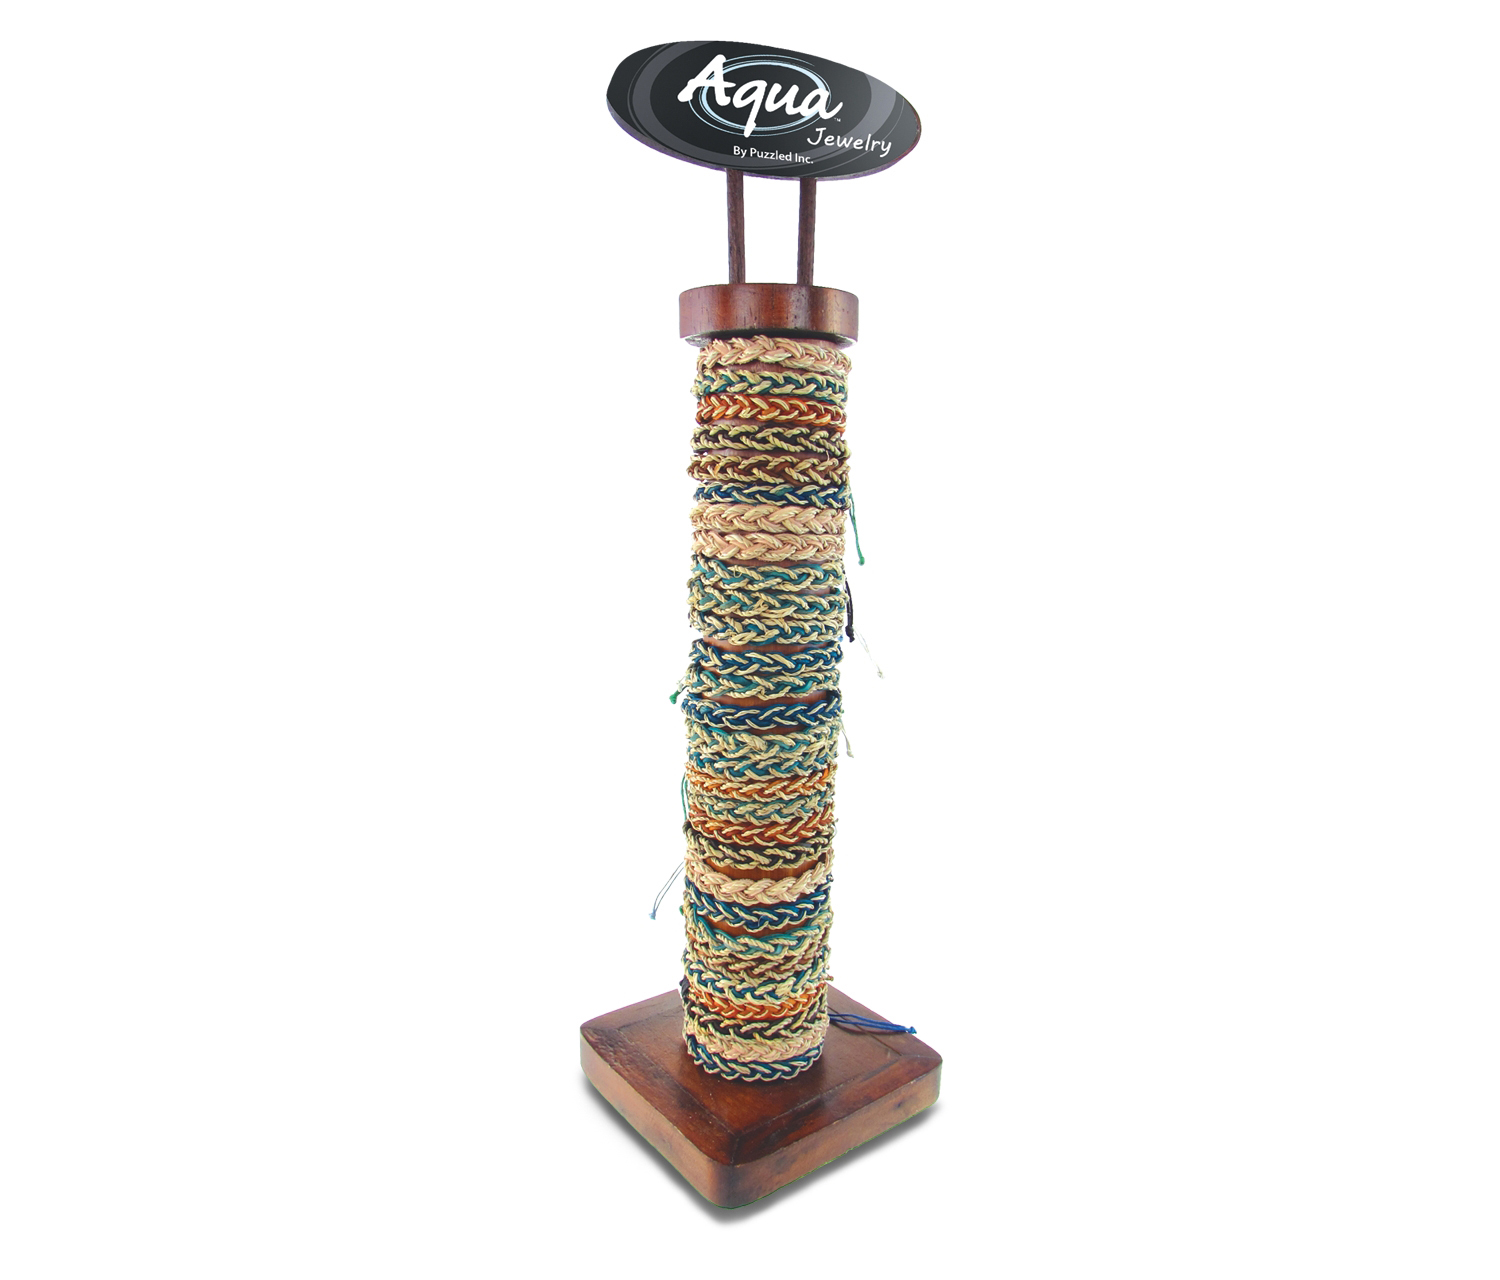 LEATHER And Straw  - 6 Asst - 96 Pcs Assorted W/Display - Aqua Bracelets Package